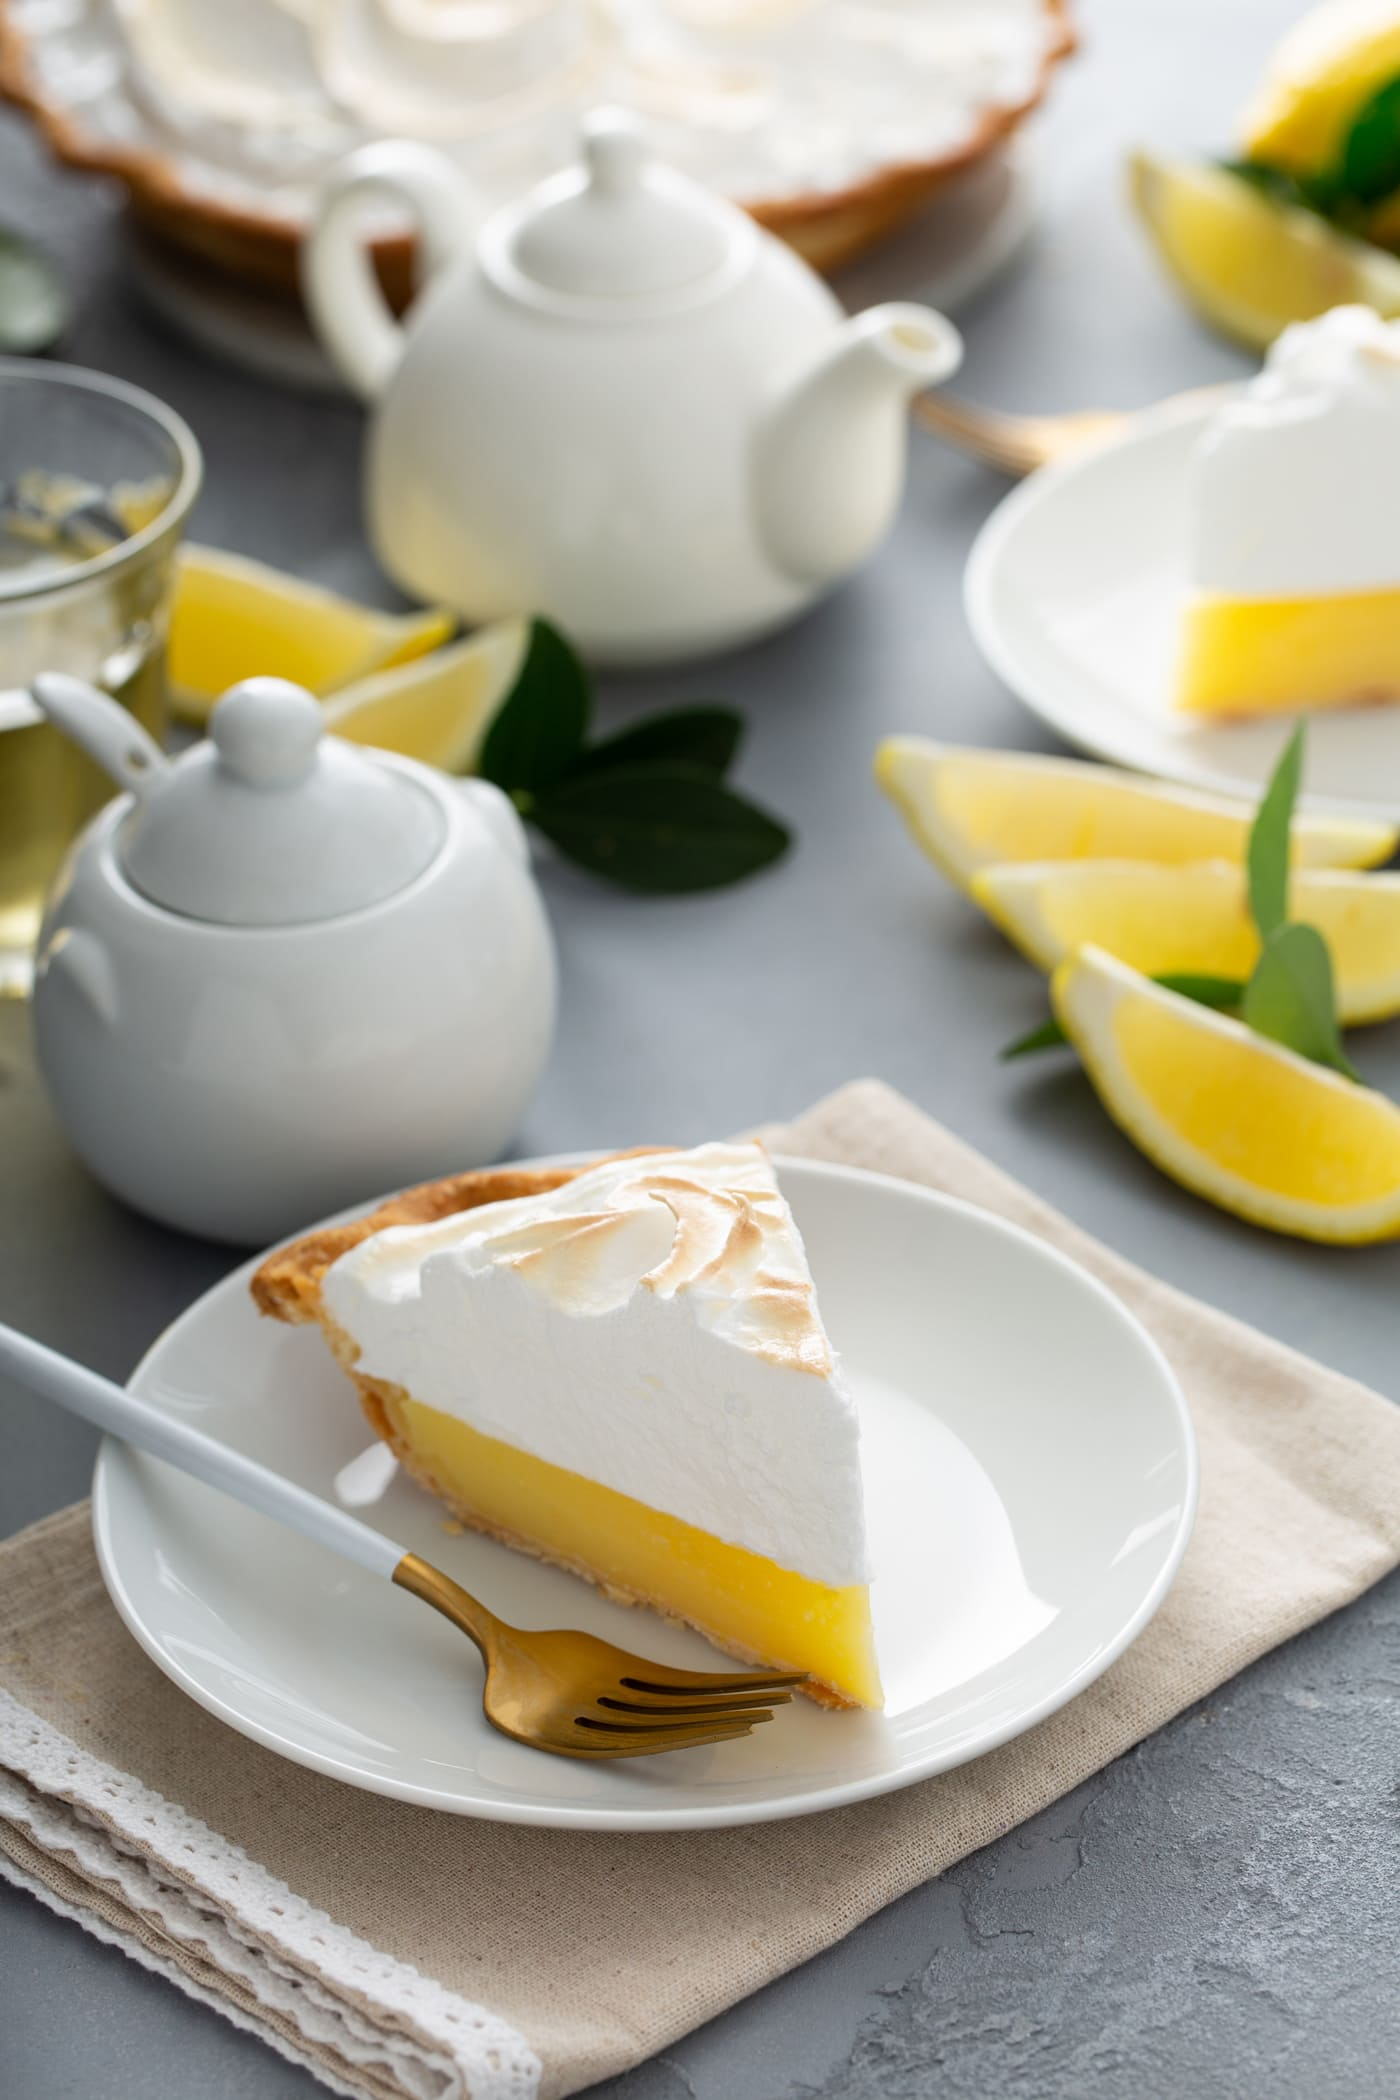 A piece of lemon meringue pie on a dessert plate. A fork in next to the pie and there are lemon wedges and a sugar bowl and cream pitcher in the background.